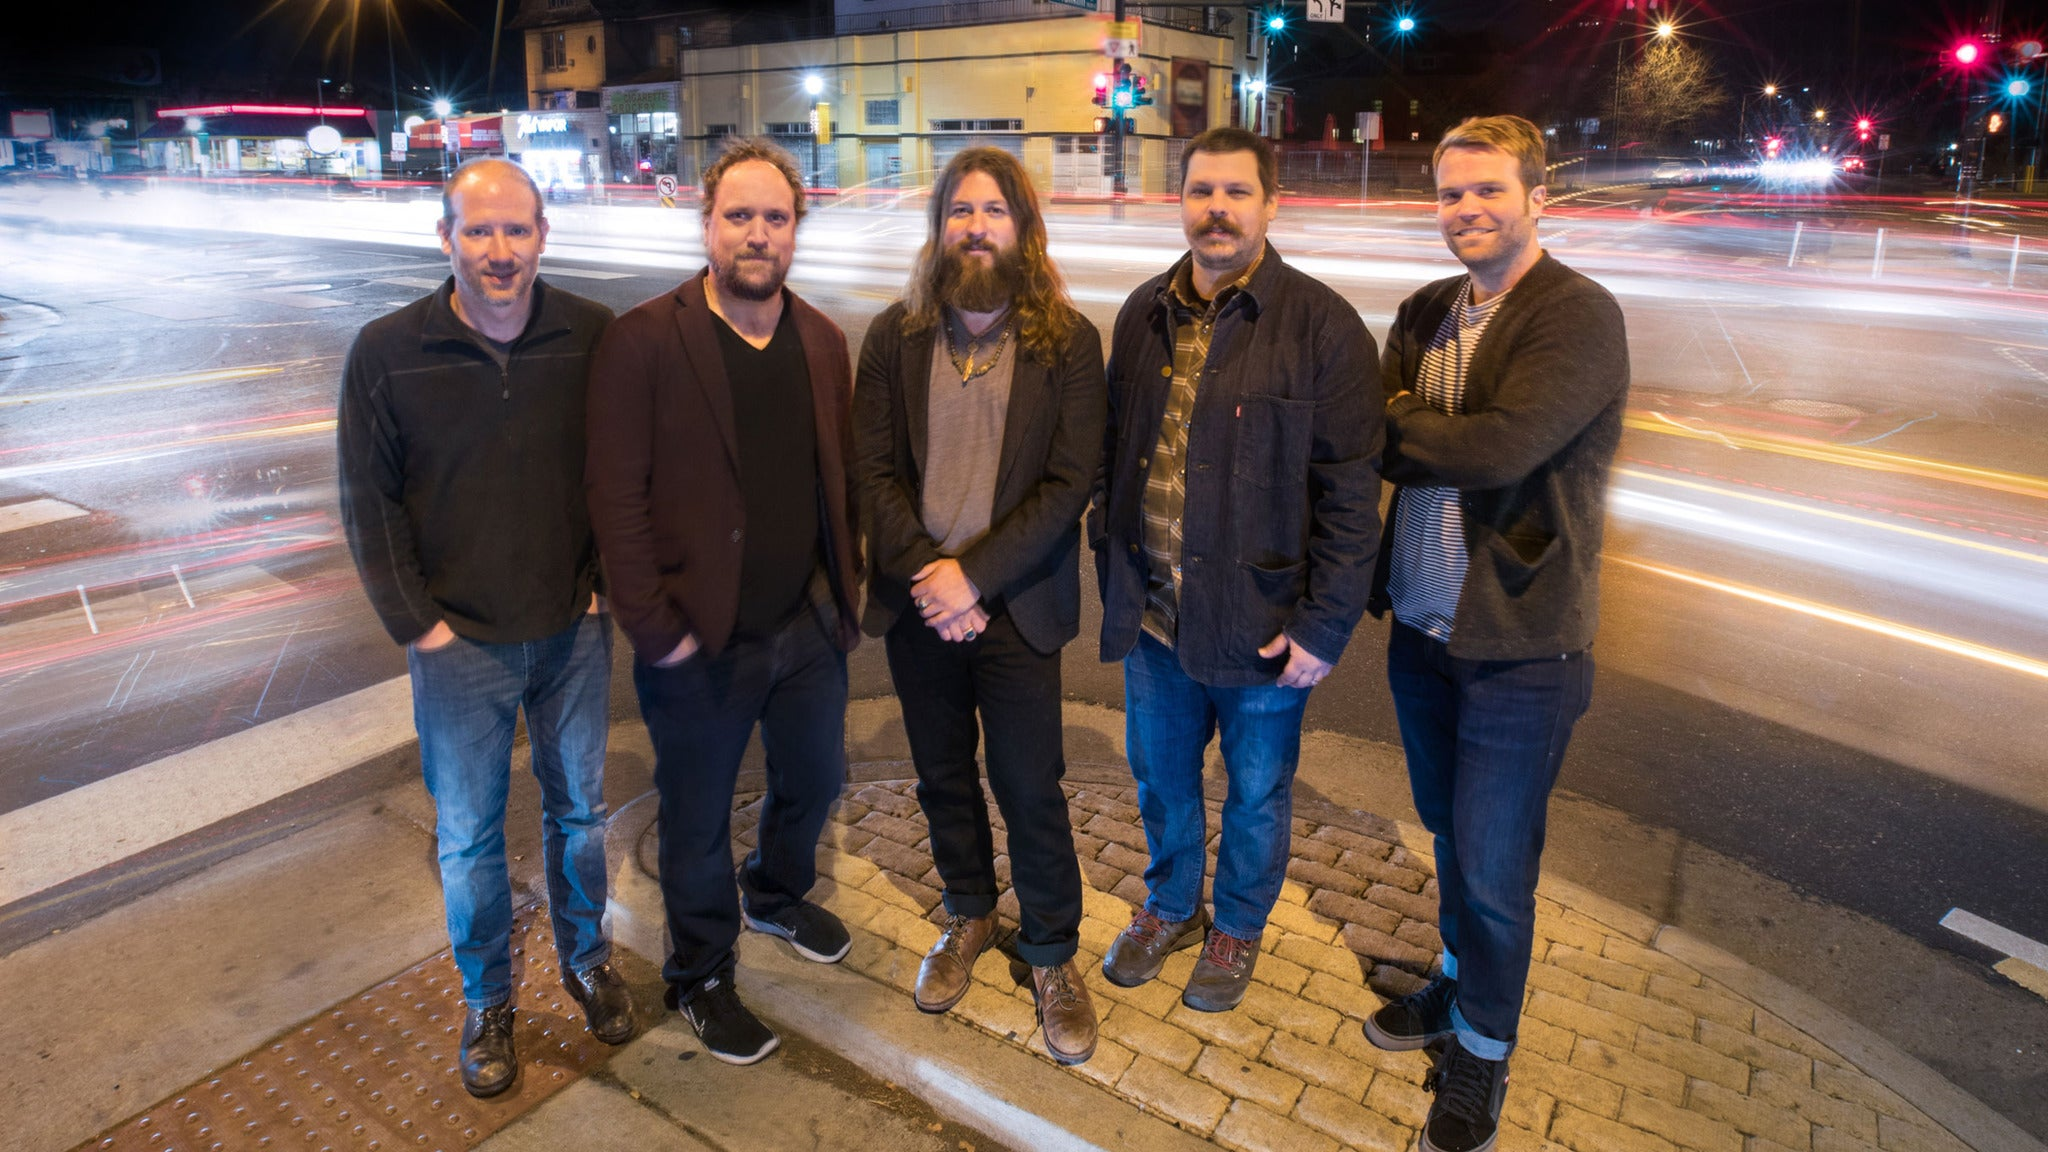 Greensky Bluegrass at Penn's Peak - Jim Thorpe, PA 18229